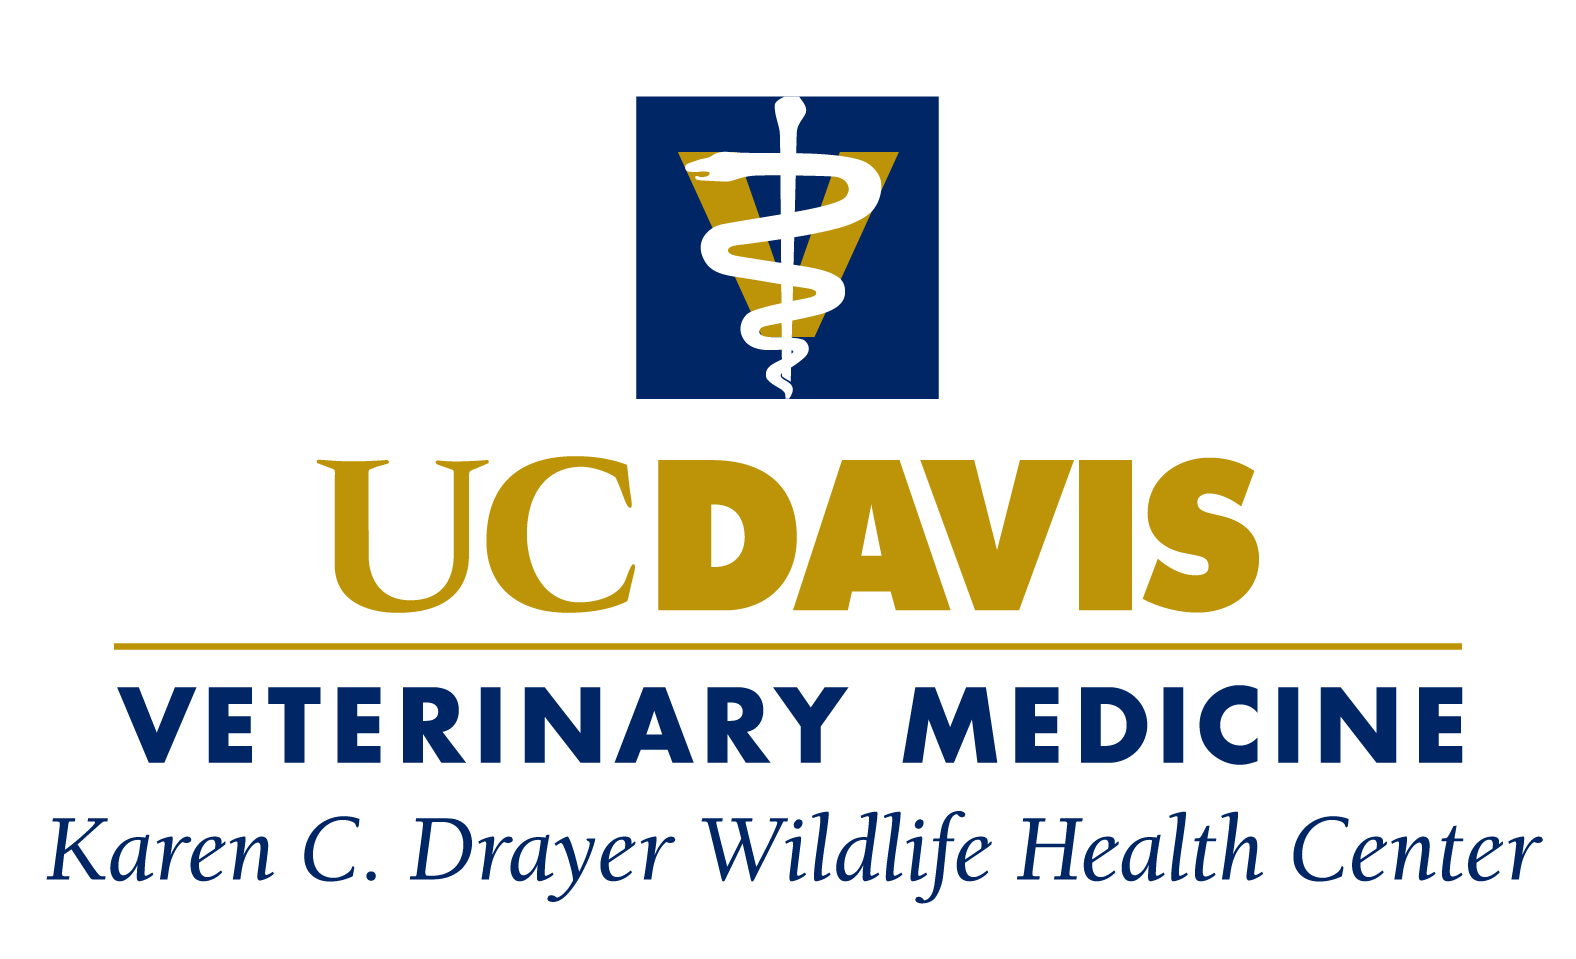 wildlife-health-center-logo.png